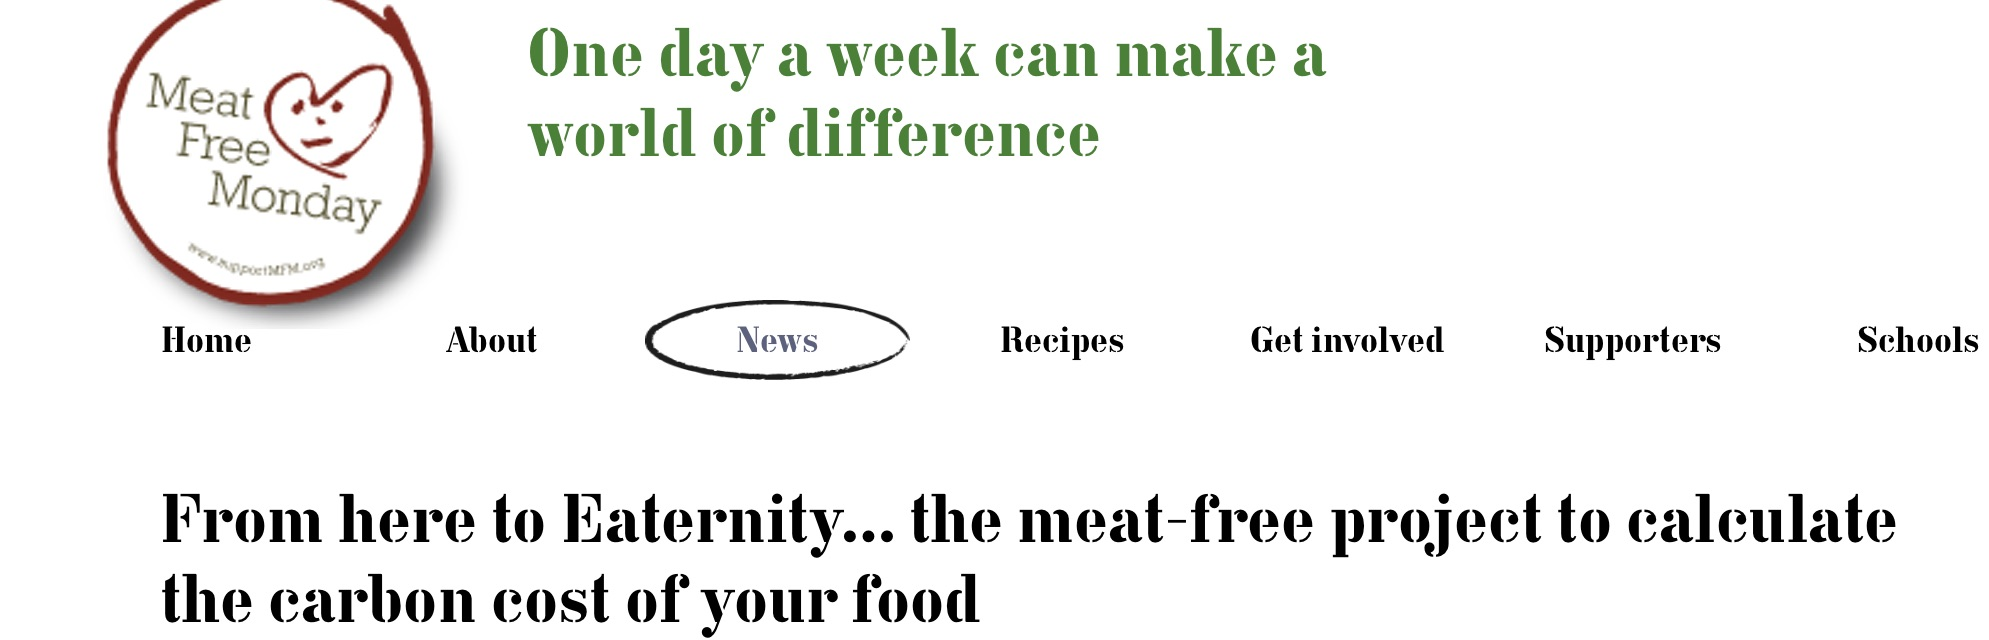 Meat Free Monday image